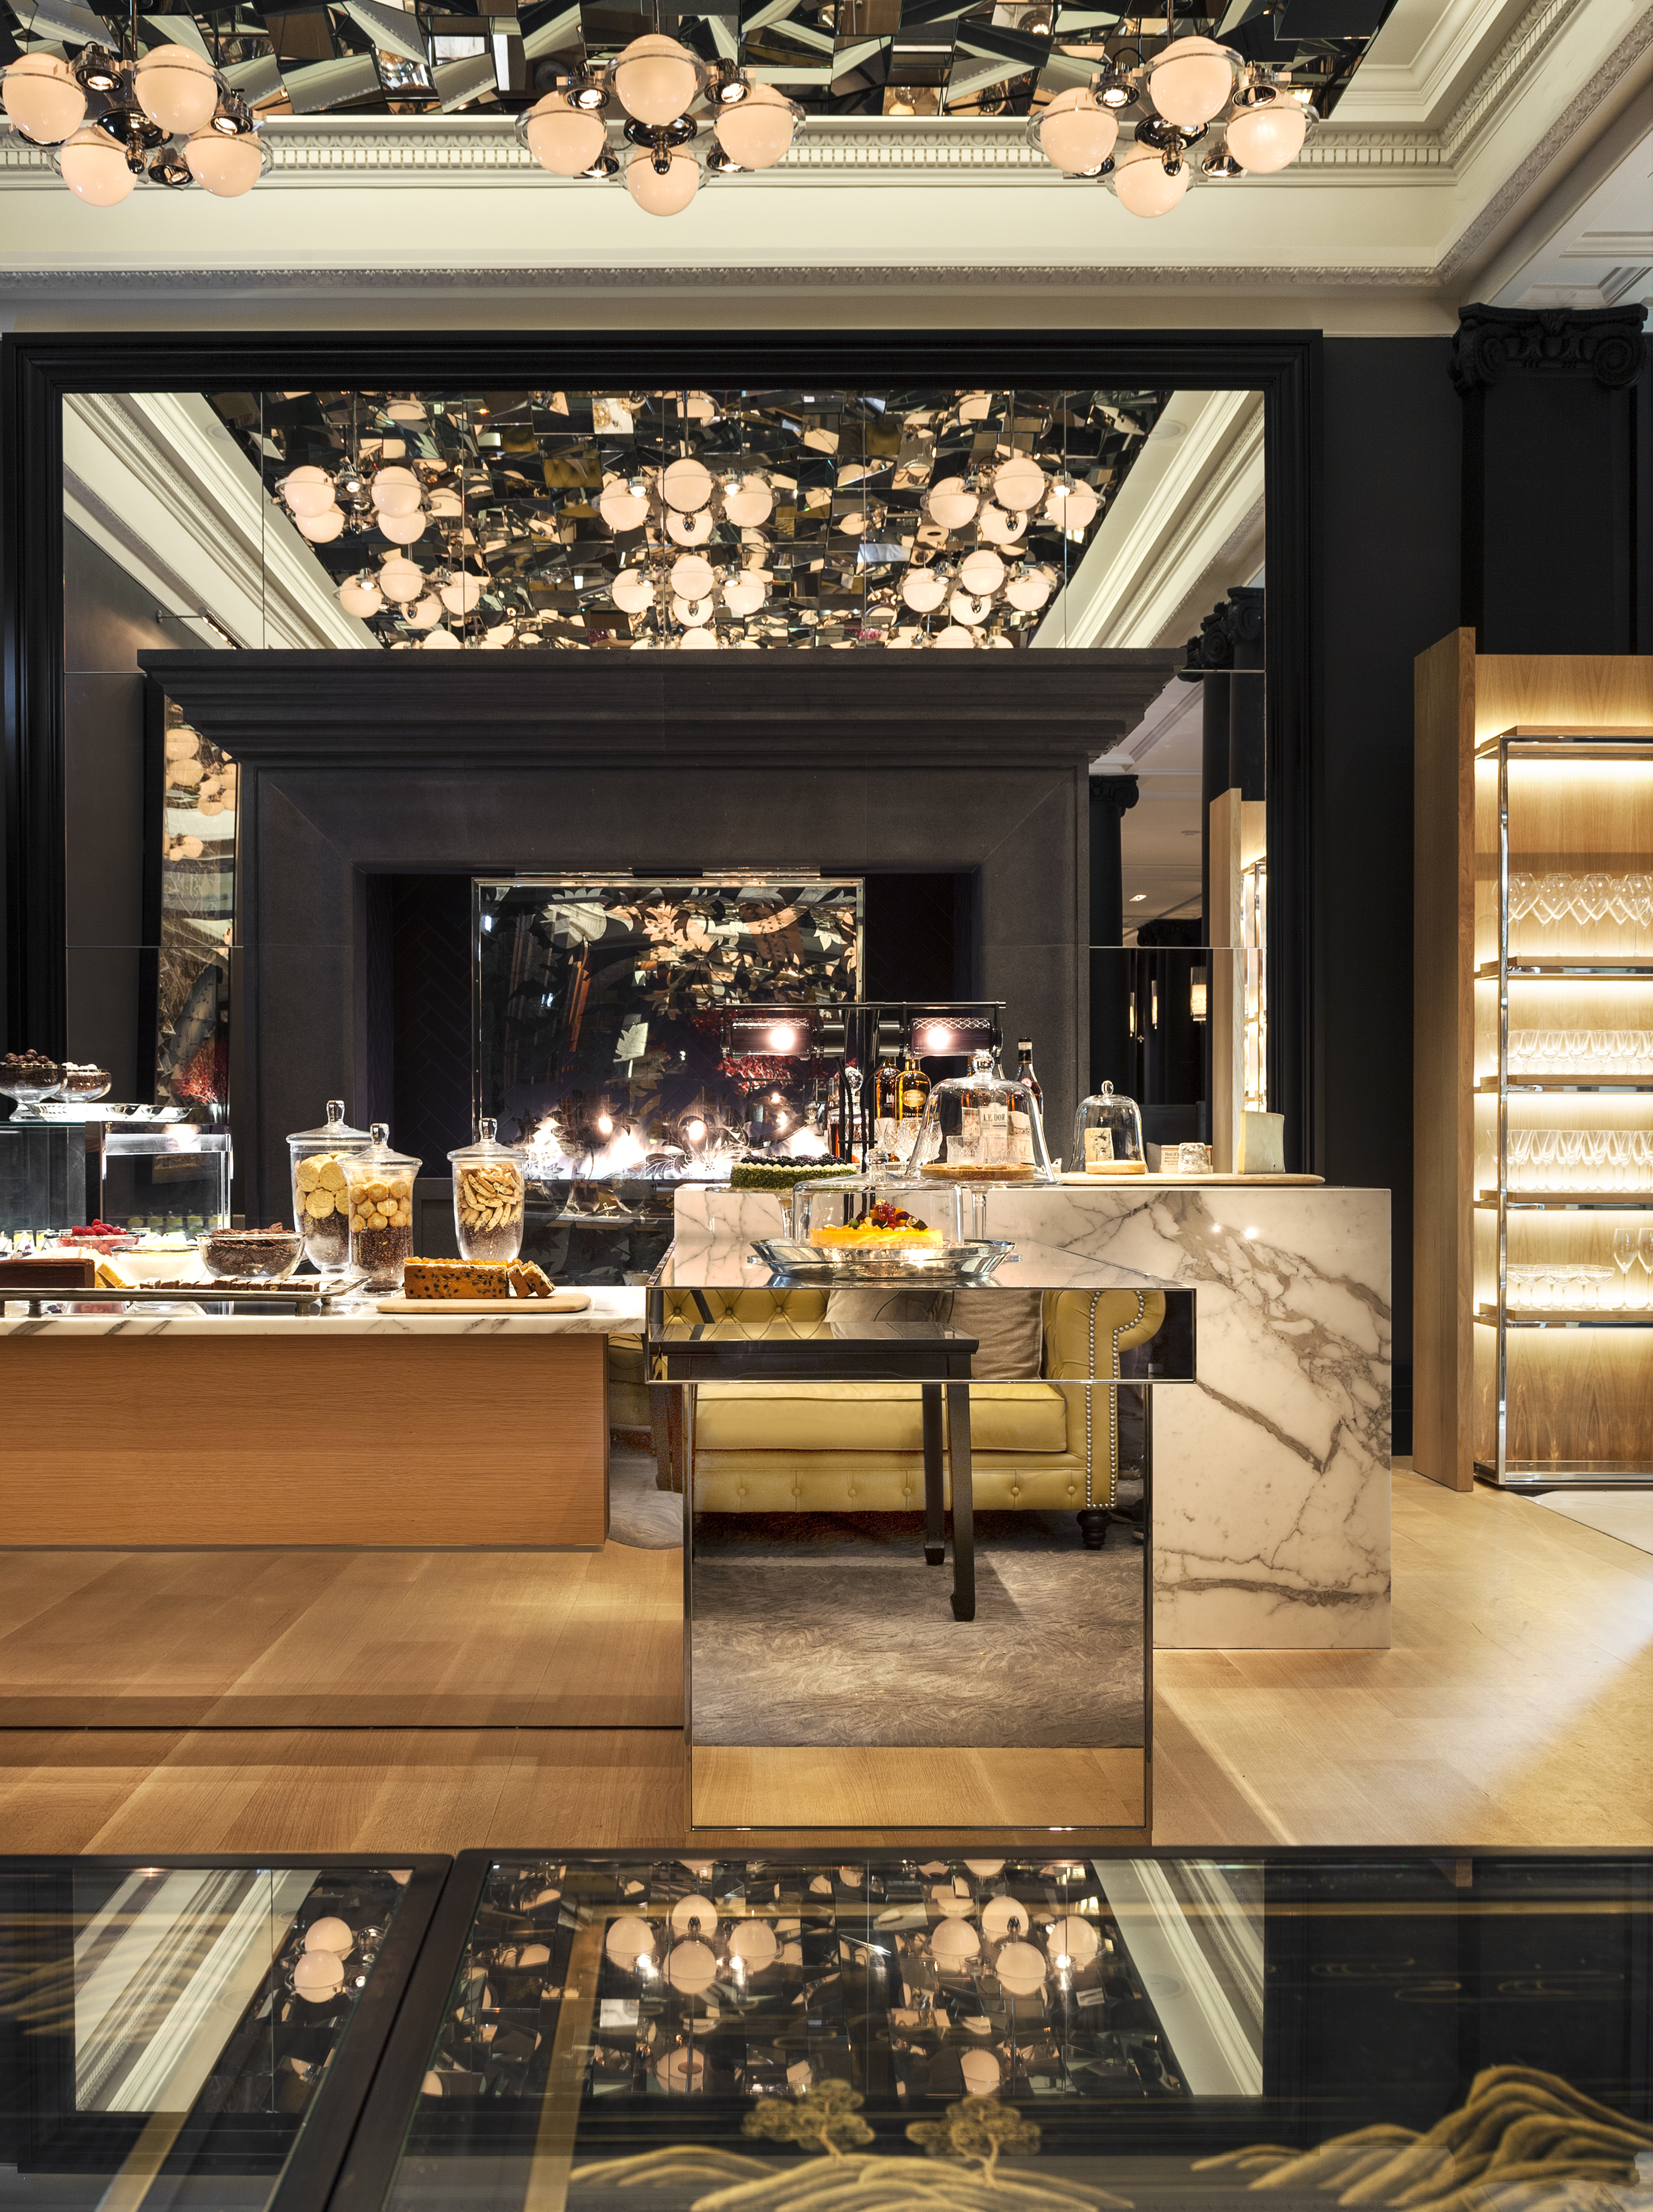 Mirror Room at Rosewood London - London